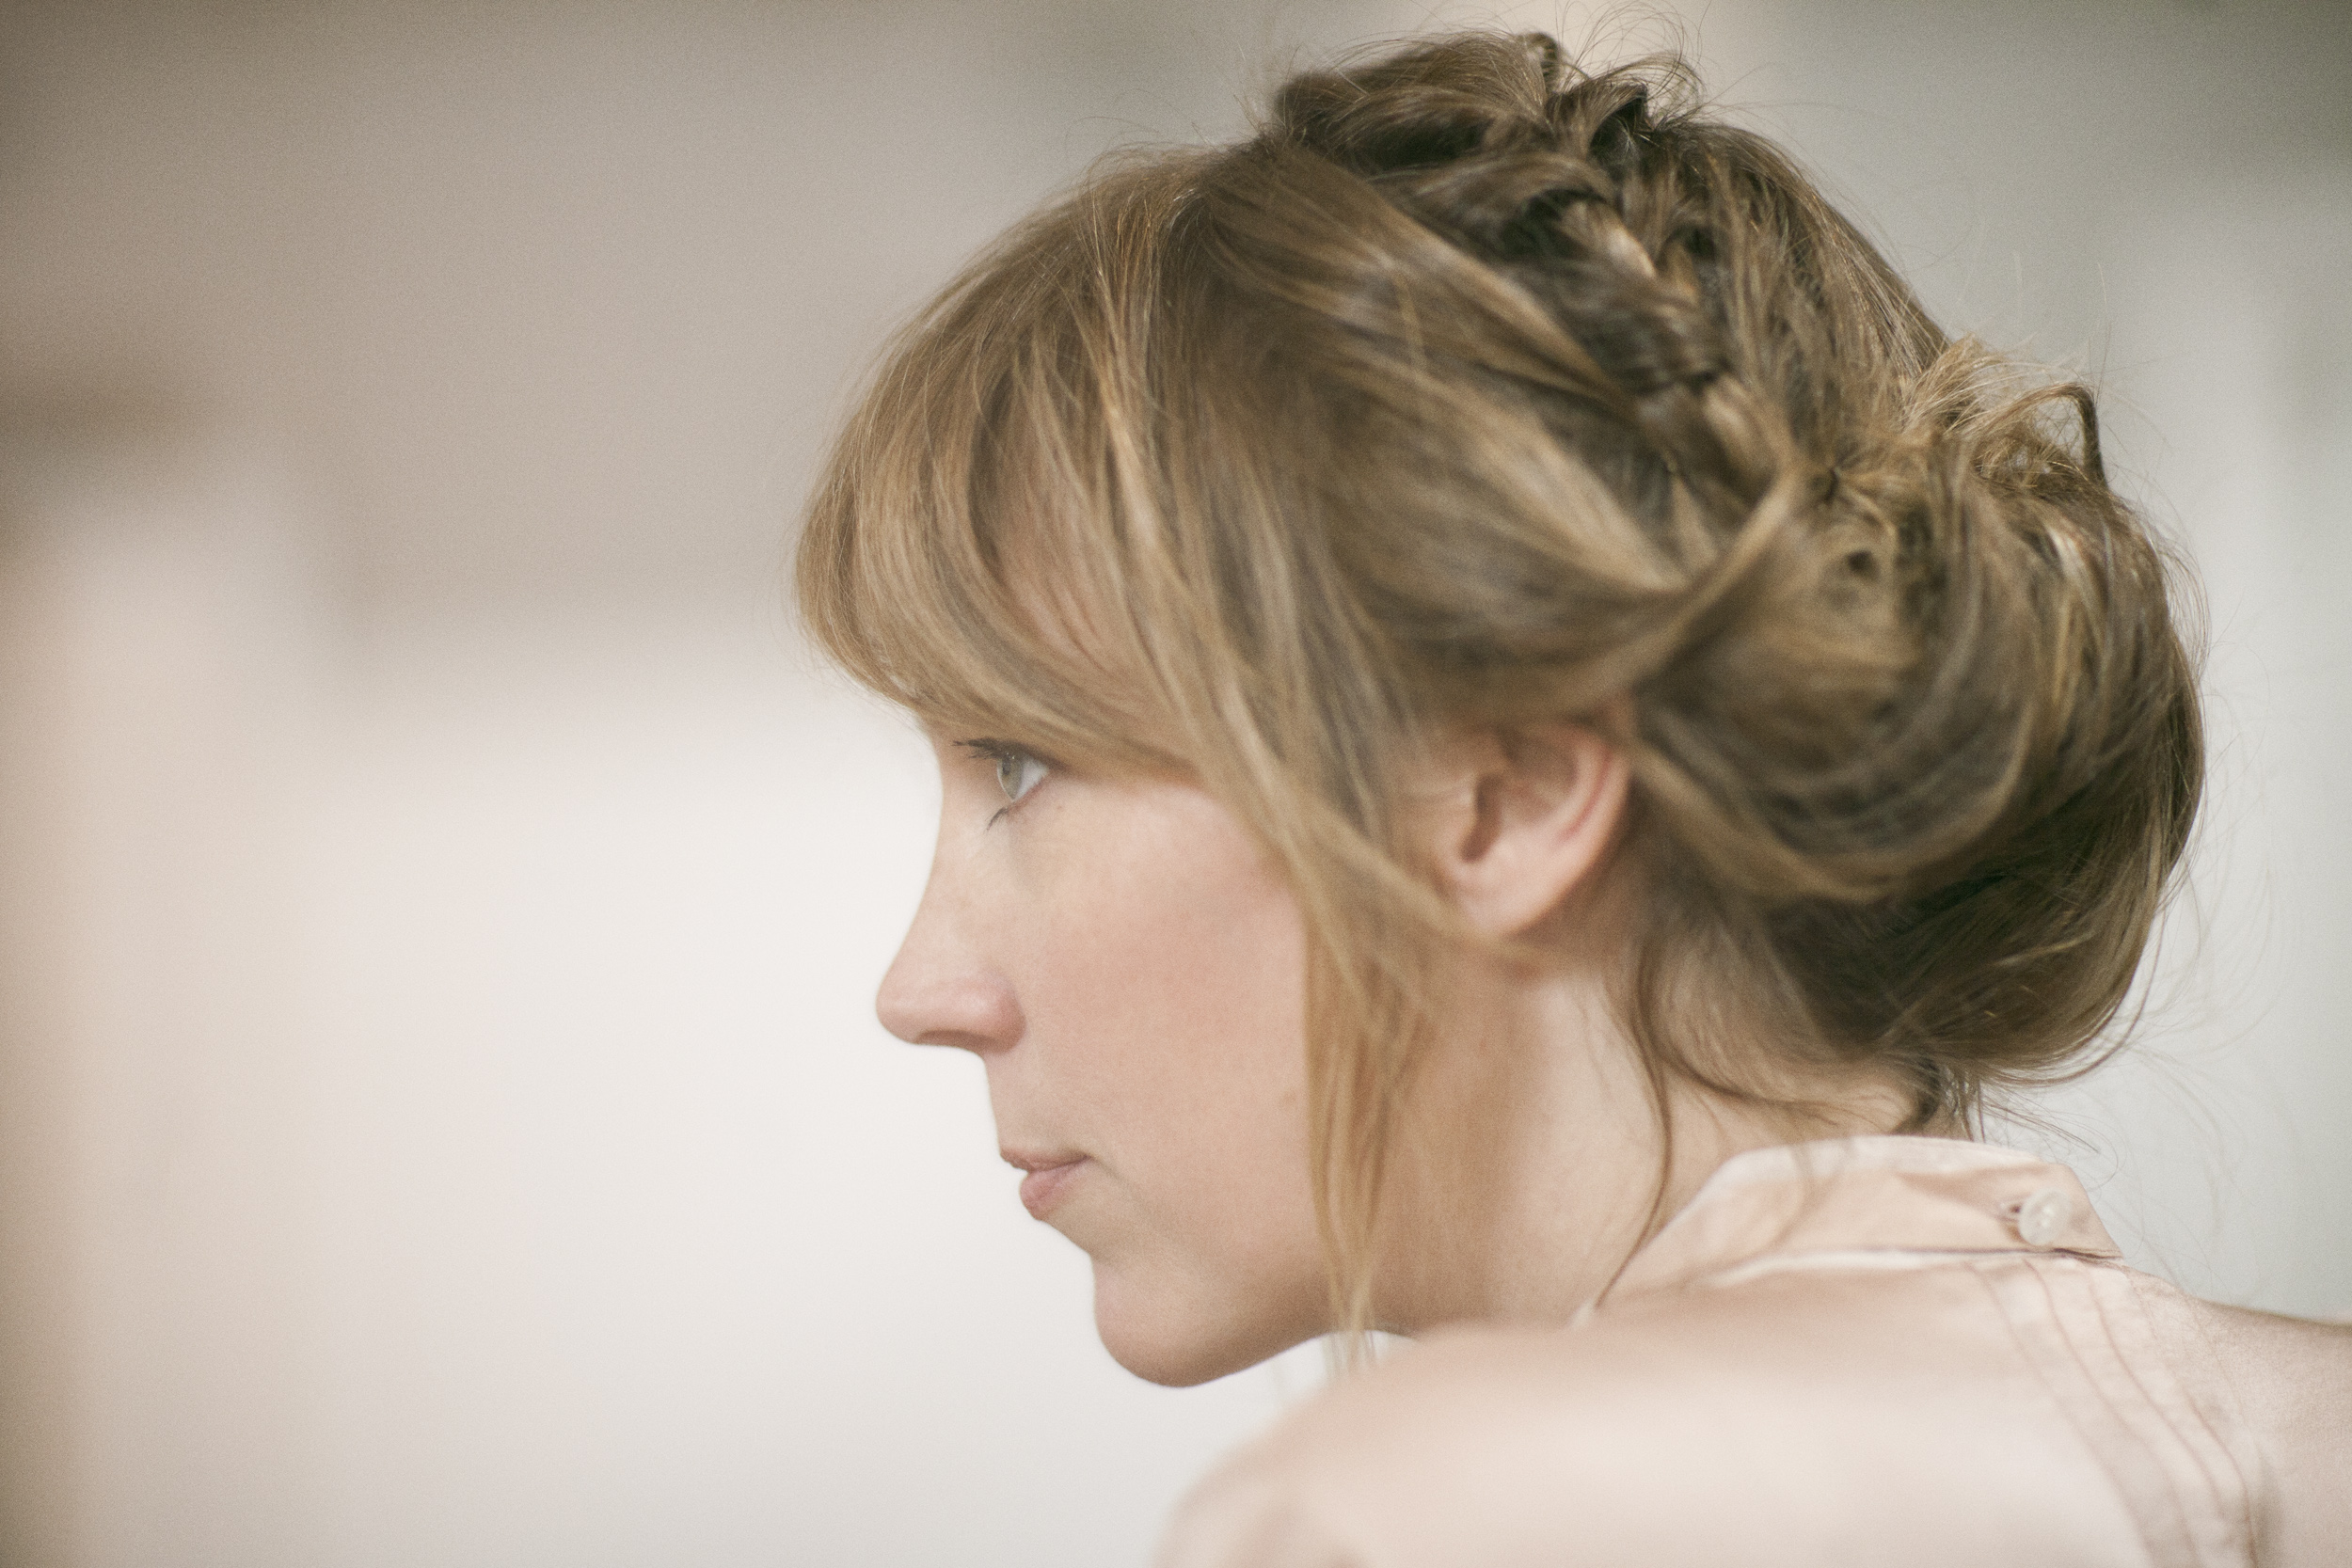 Beth Orton and the Compassionate Crowd